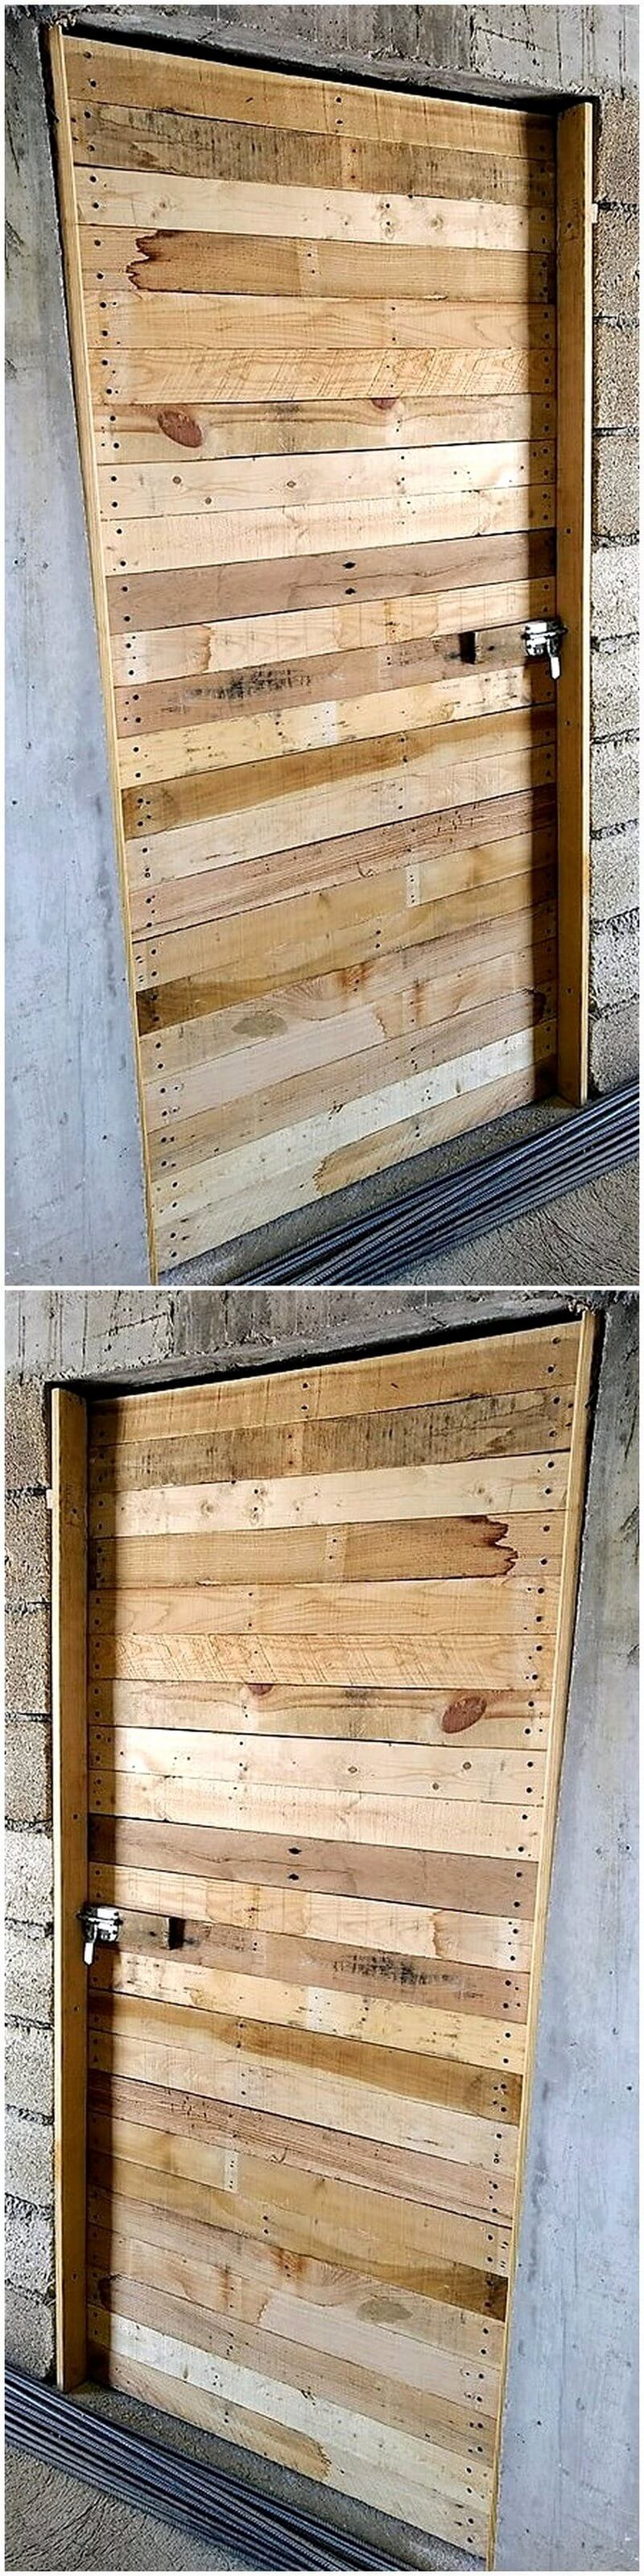 reused pallet wood door